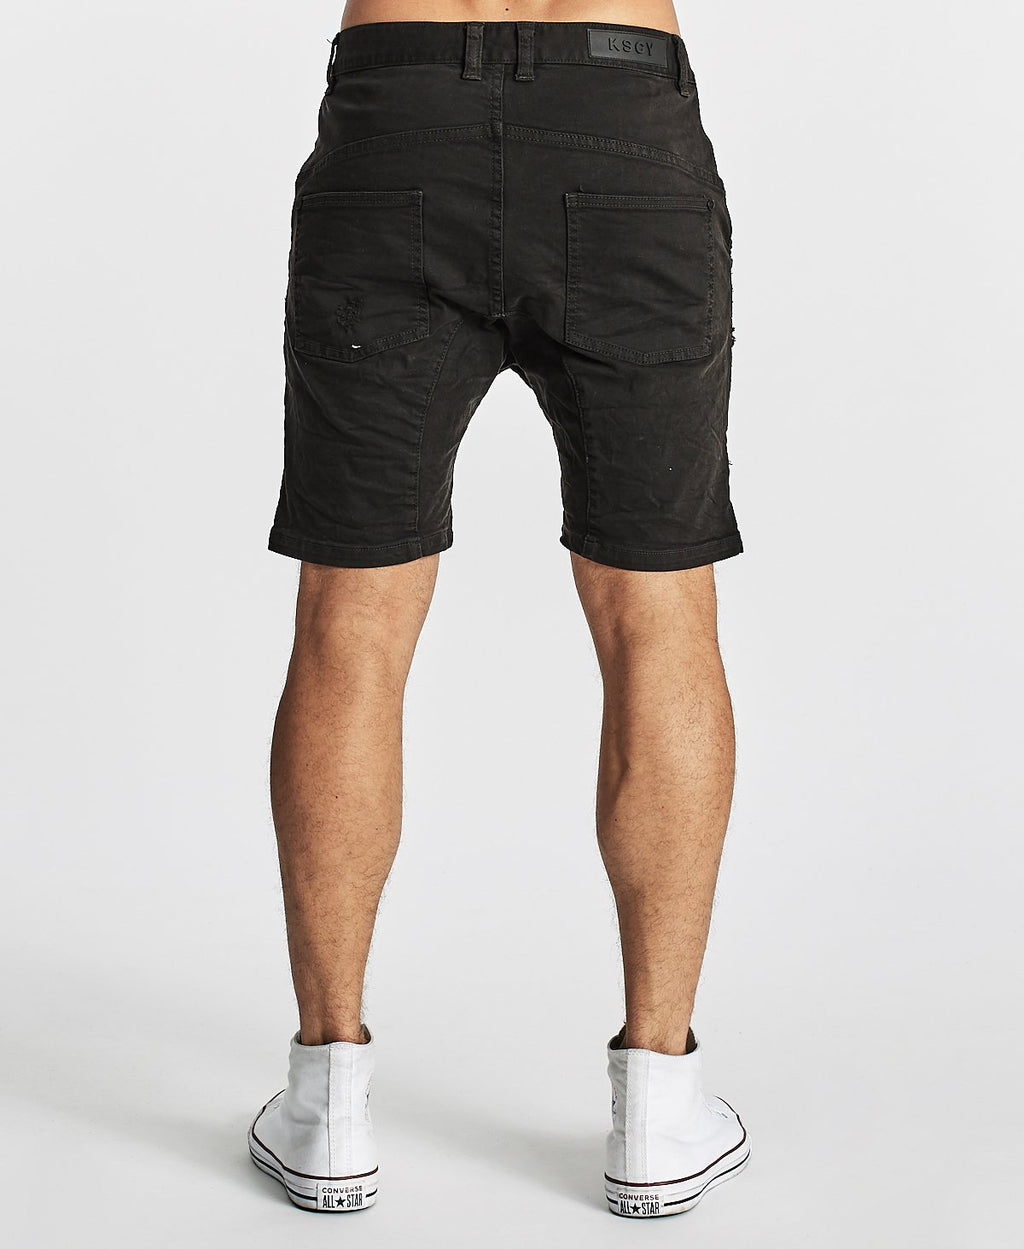 Zeppelin Short Black